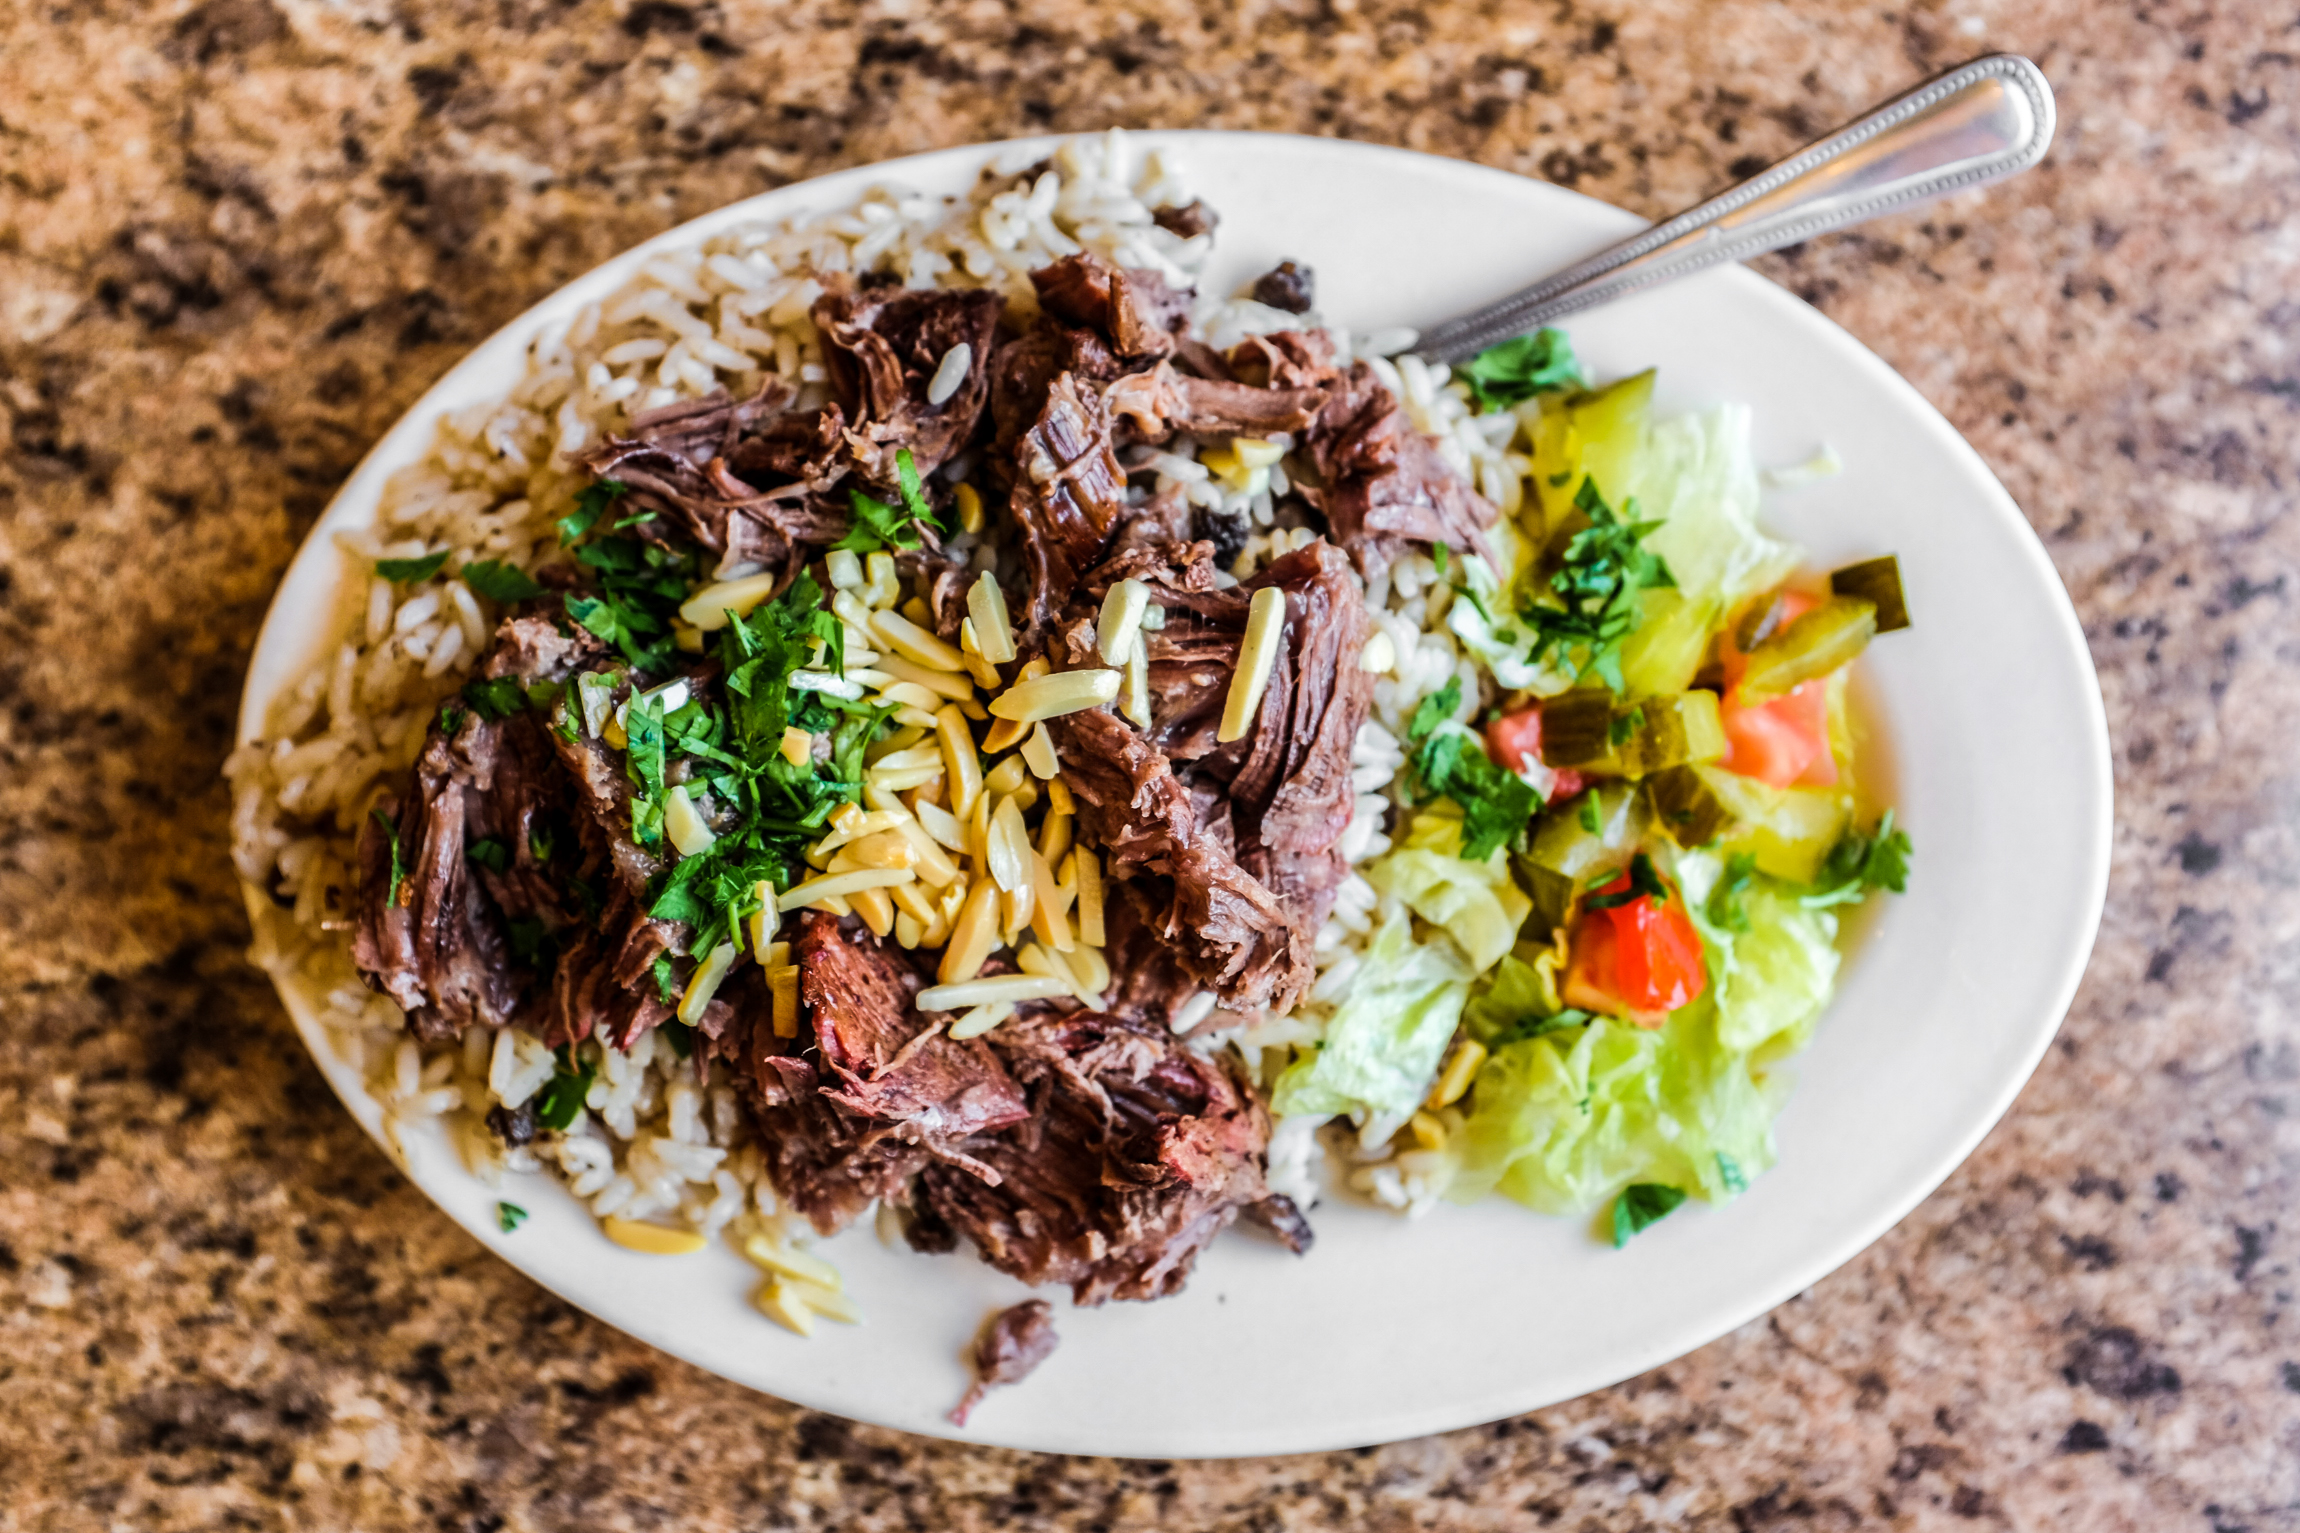 shredded lamb over rice with slivered almonds and a salad on the side